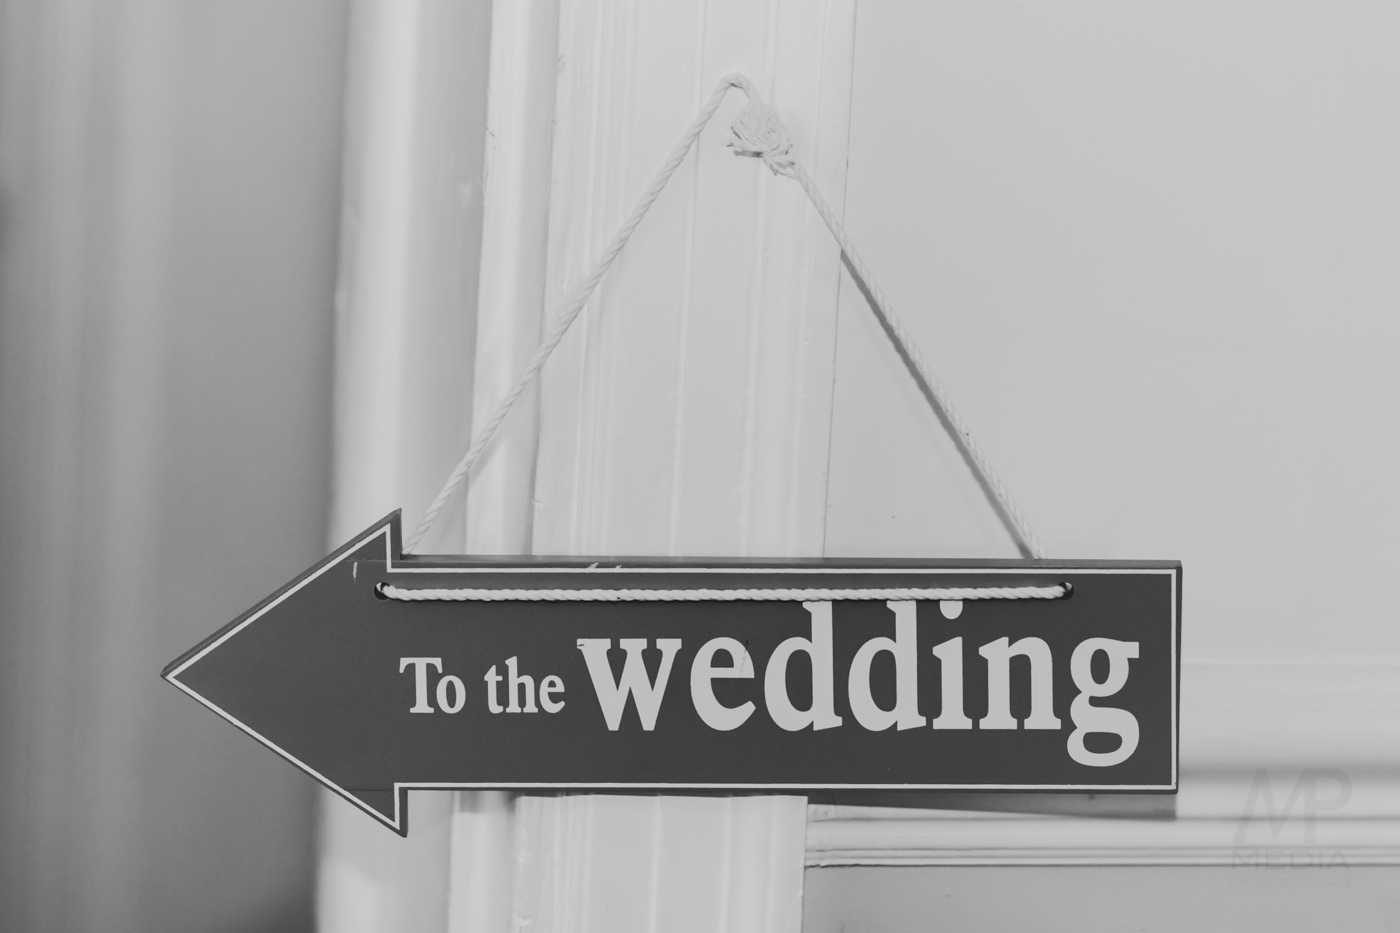 391 - Chris and Natalies Wedding (MAIN) - DO NOT SHARE THIS IMAGES ONLINE -4718.JPG